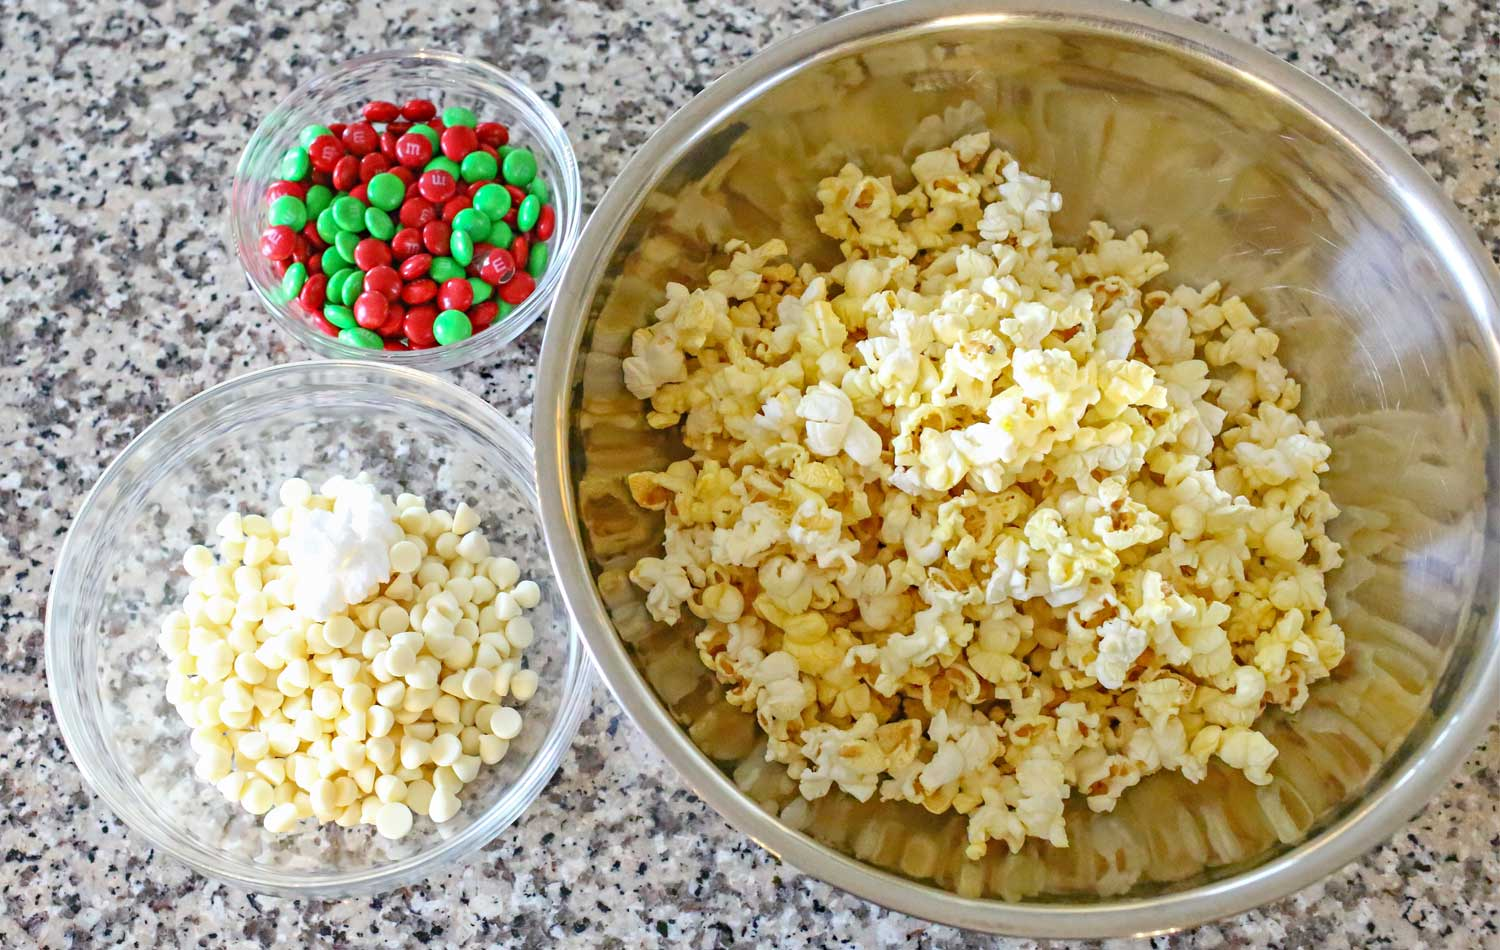 Assemble the ingredients for this yummy and addictive white chocolate holiday popcorn.